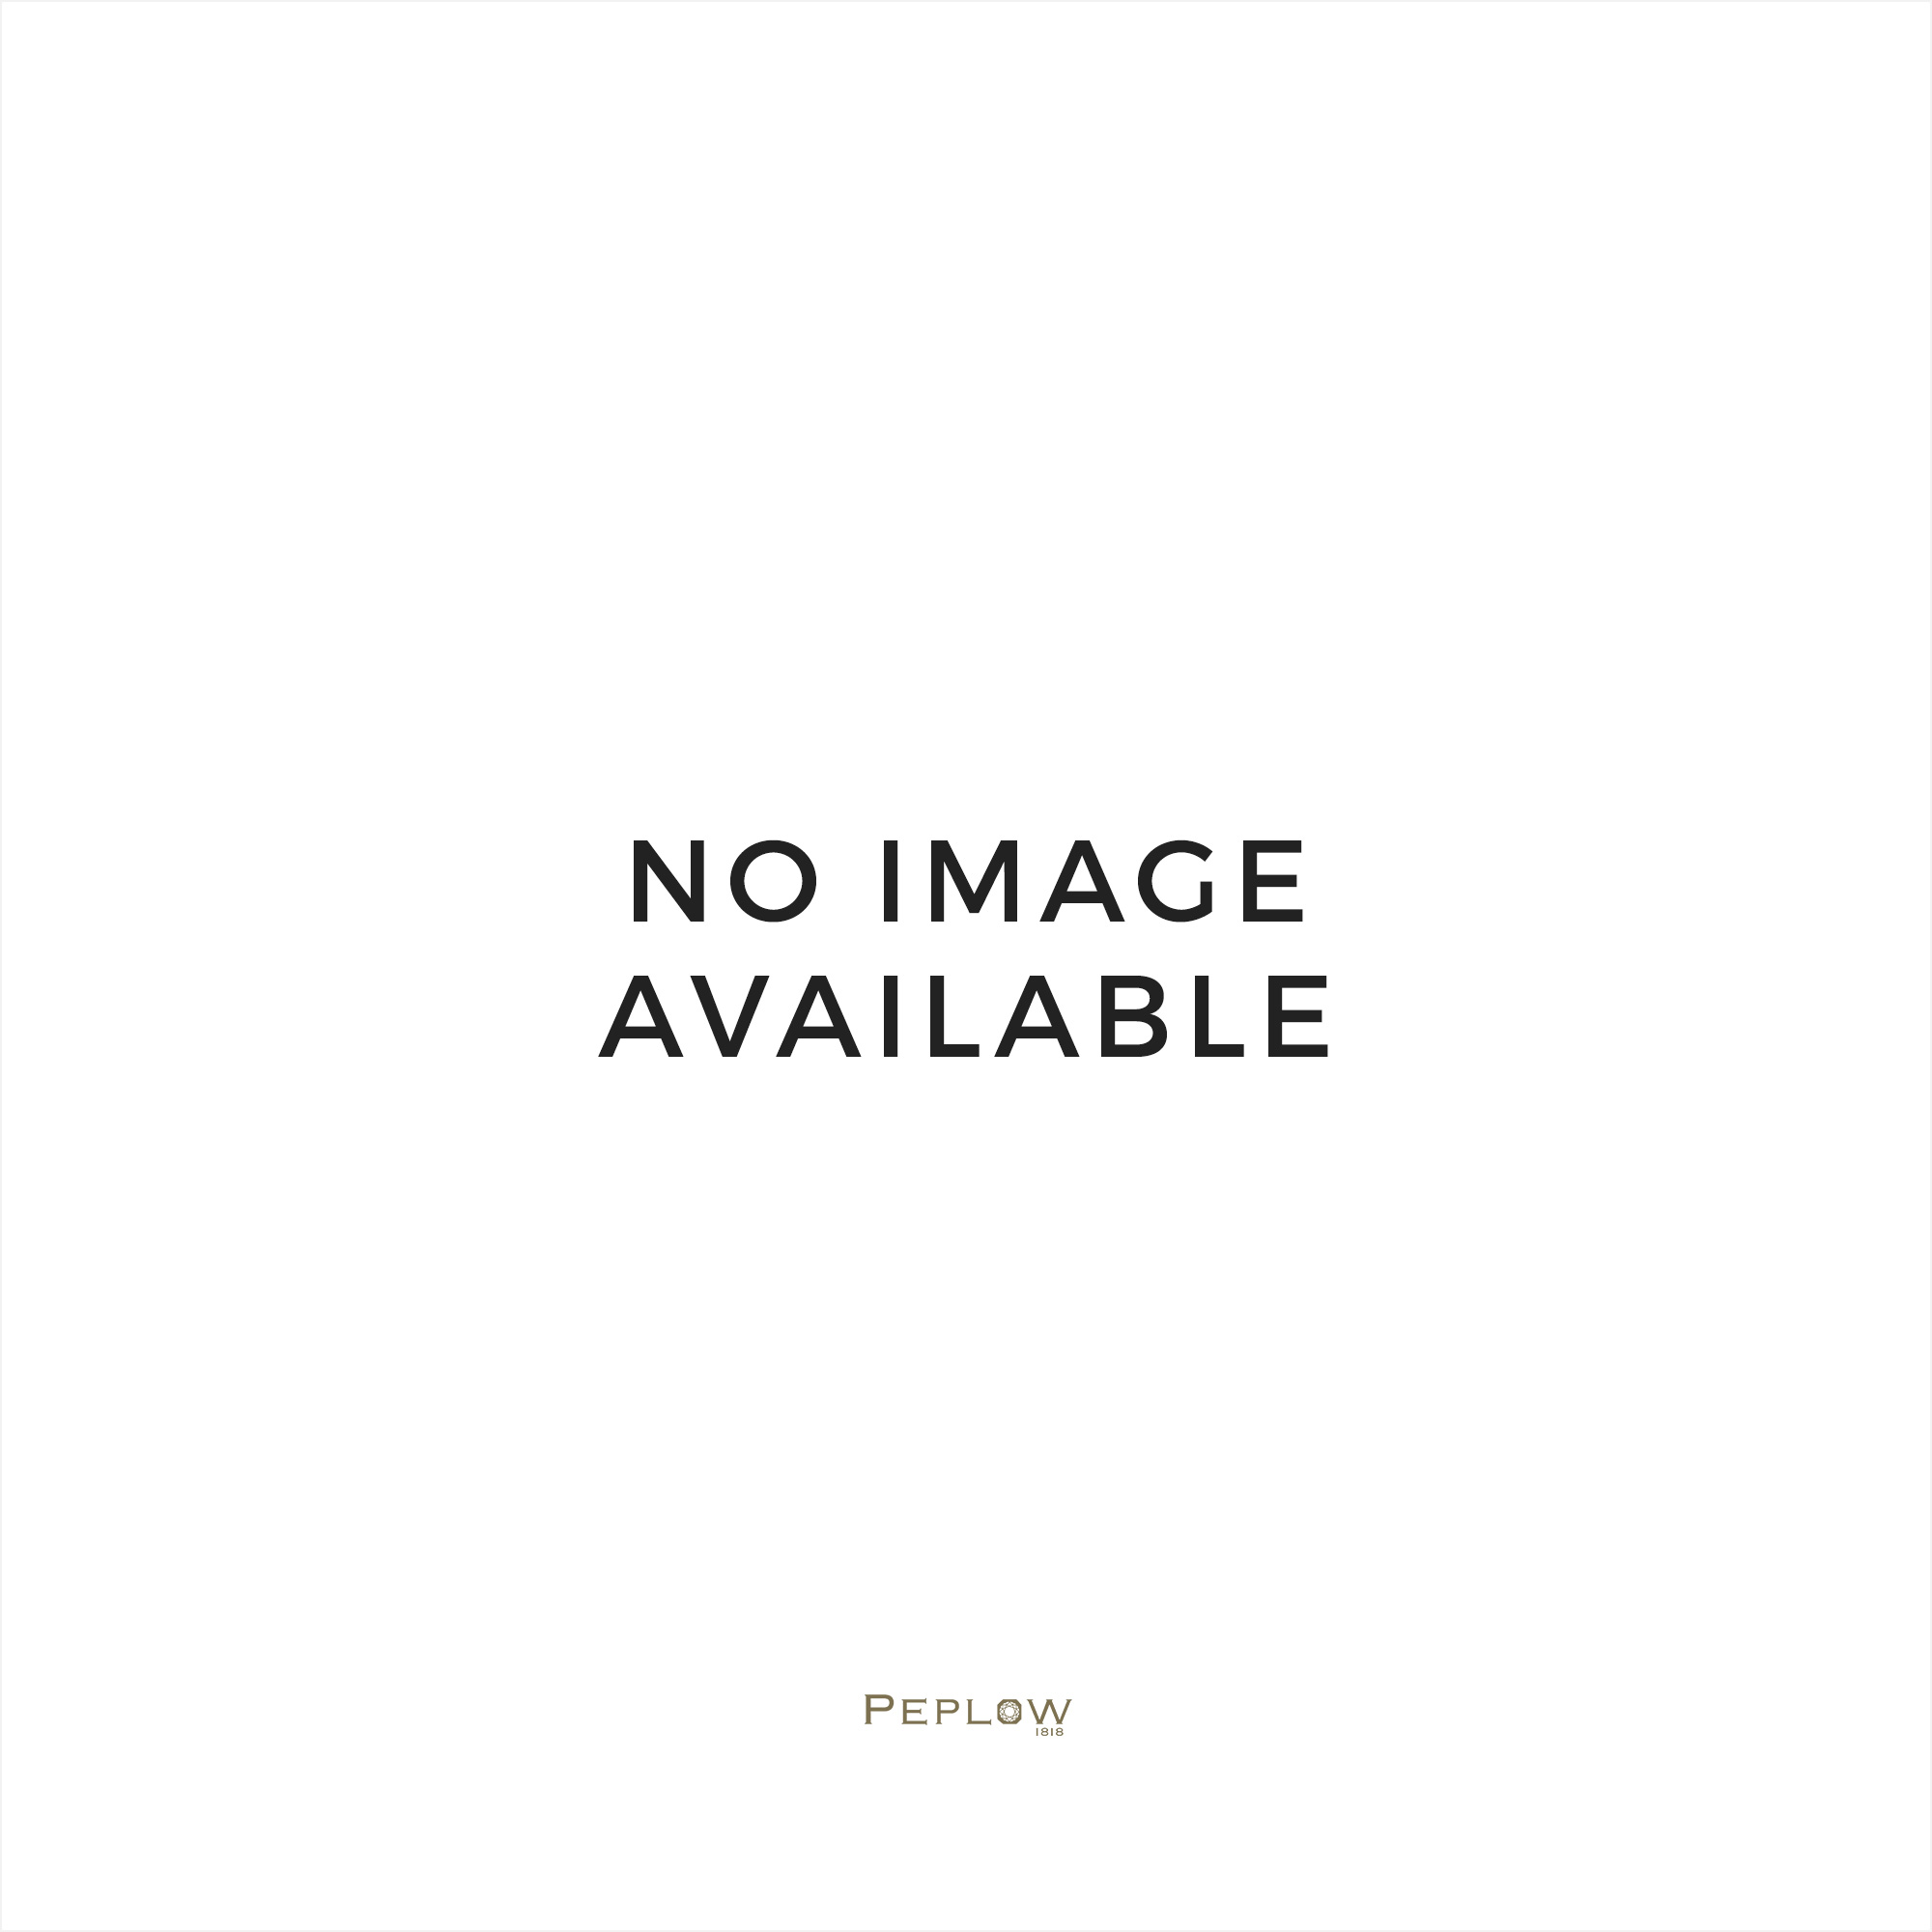 Citizen Watches Citizen Gents Eco-Drive Red Arrow Chronograph Watch